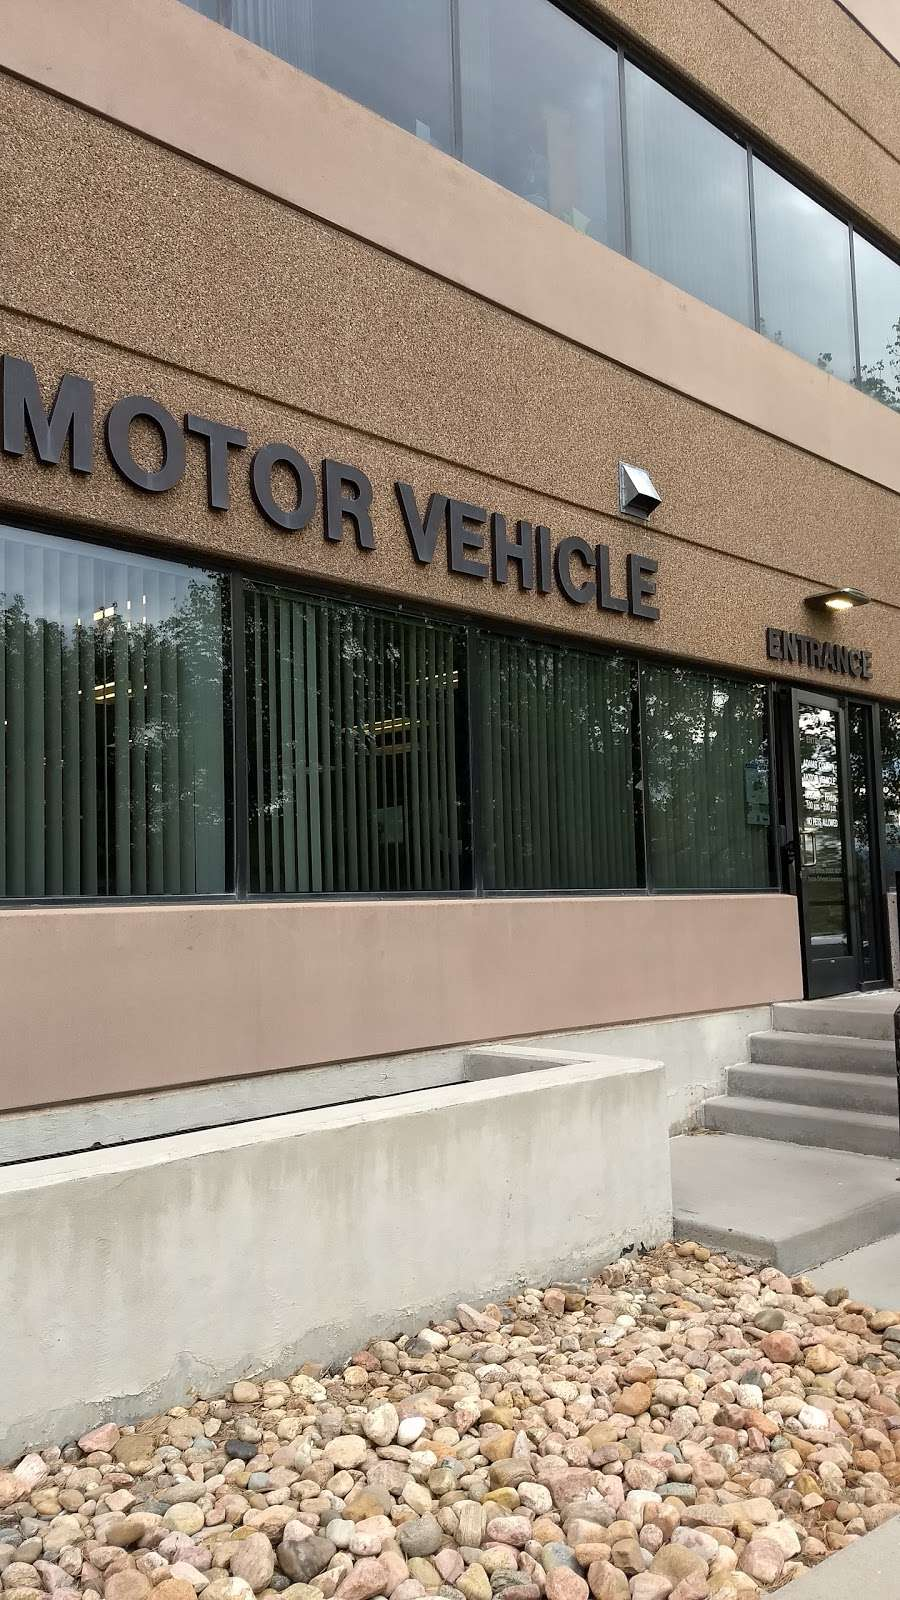 North Pecos Motor Vehicle - local government office  | Photo 1 of 4 | Address: 12200 N Pecos St, Denver, CO 80234, USA | Phone: (720) 523-6010